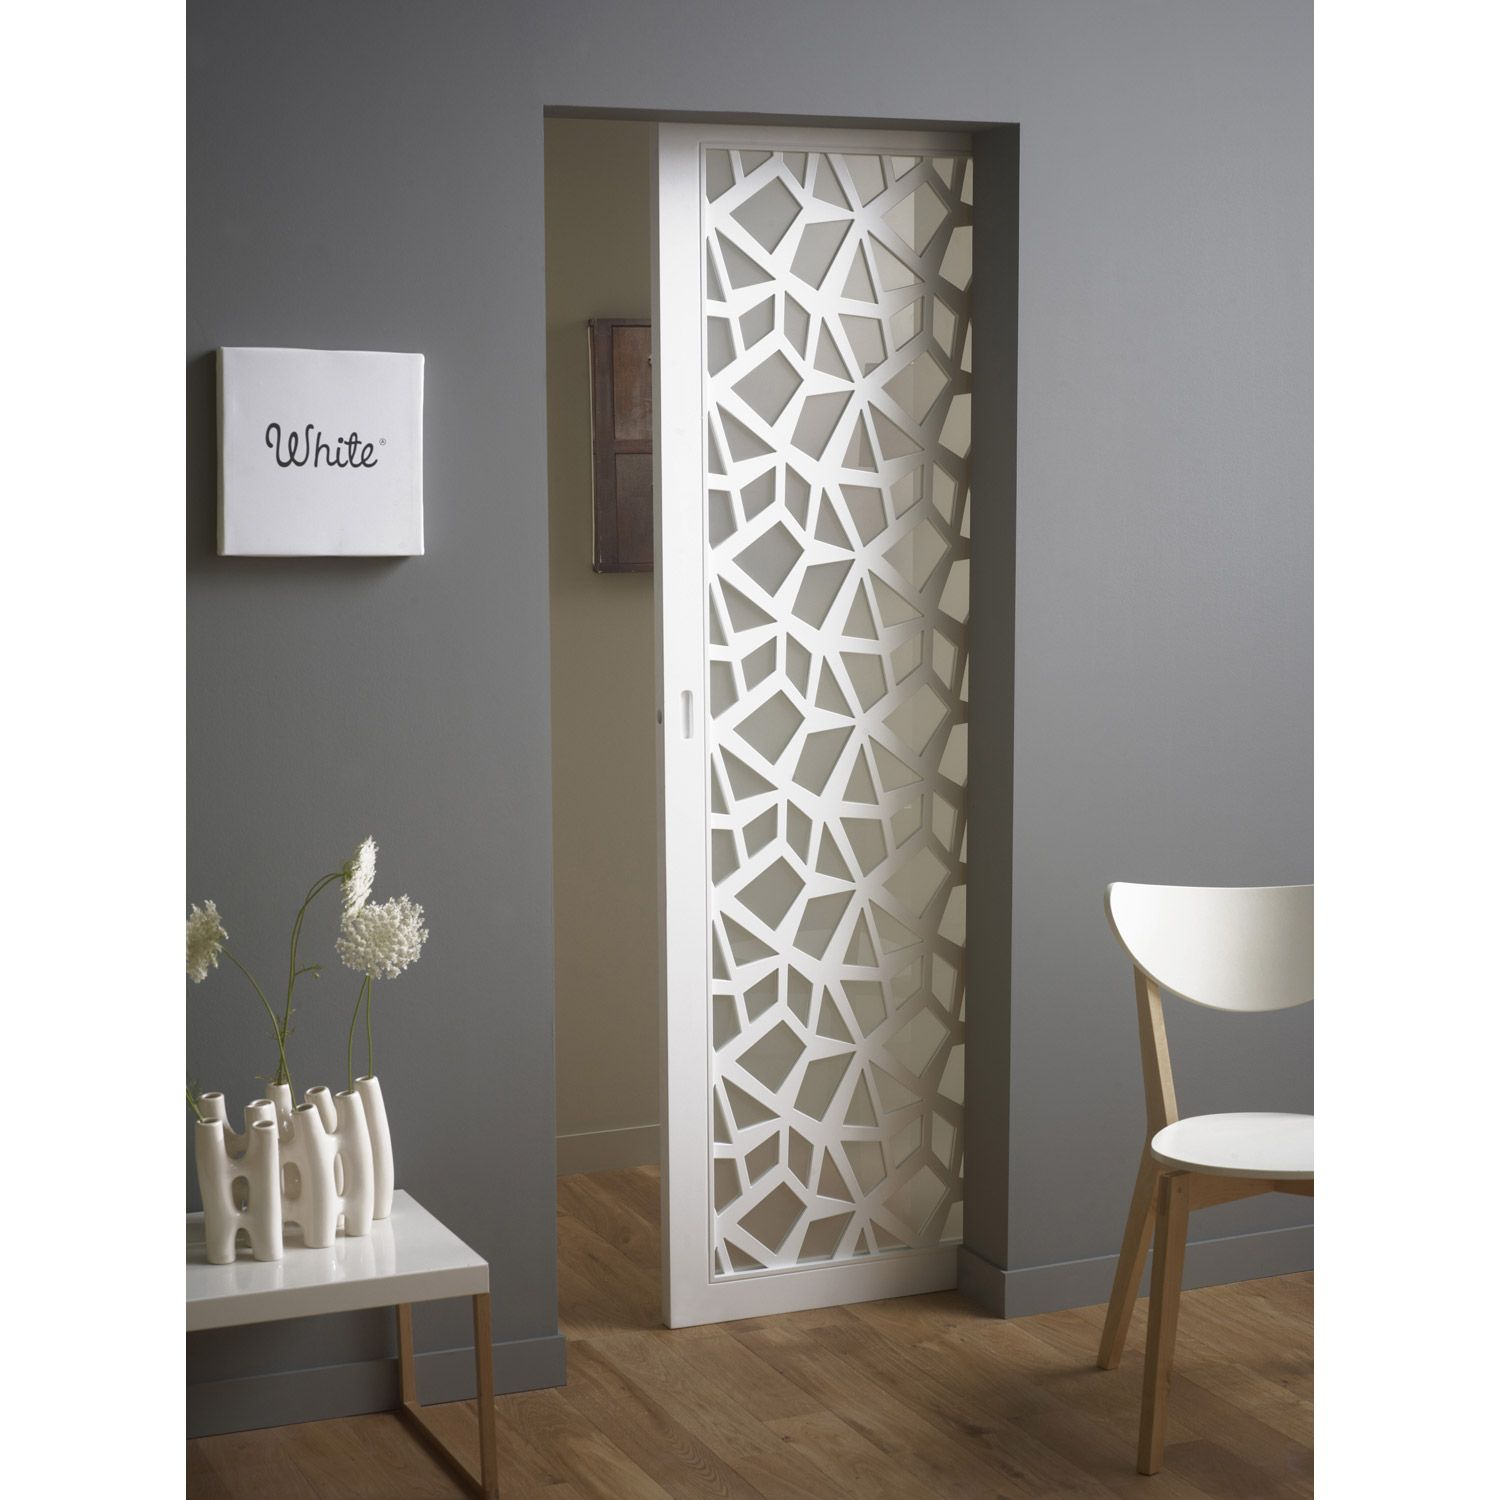 Trendy ensemble porte coulissante crash verre mdf laqu for Porte 0 galandage lapeyre